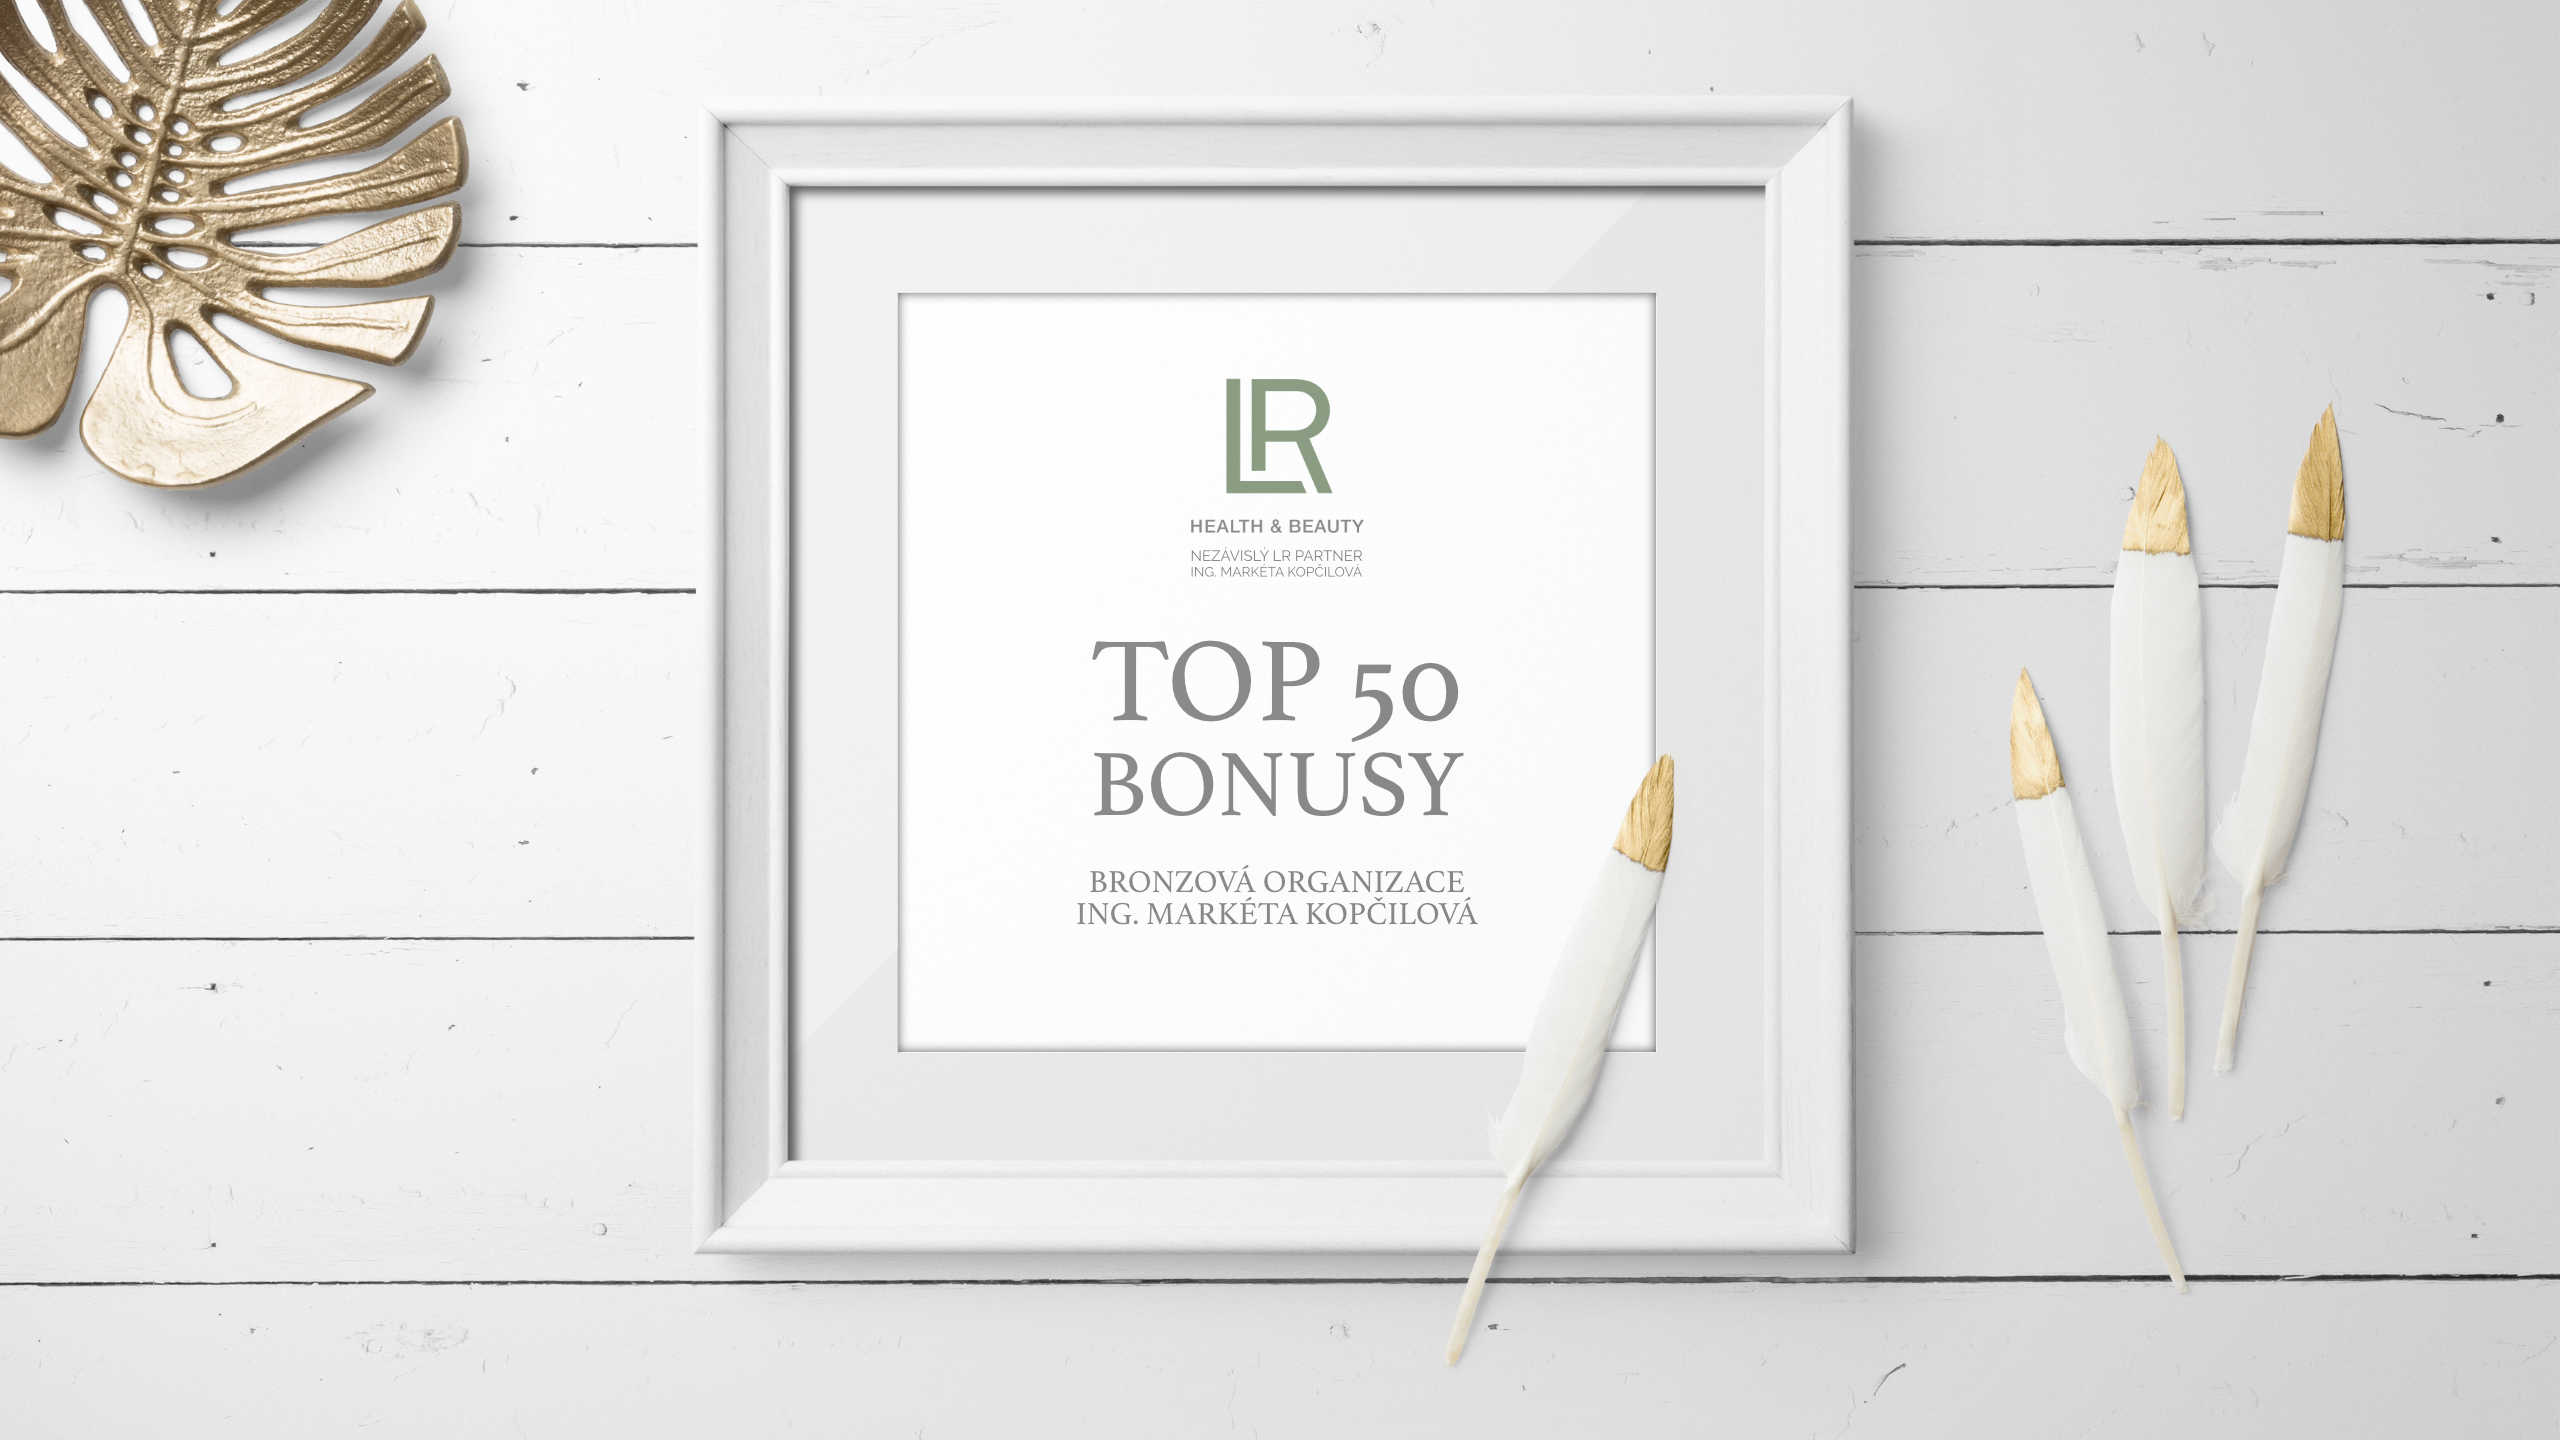 LR HEALTH & BEAUTY TOP 50 BONUSY: březen 2018